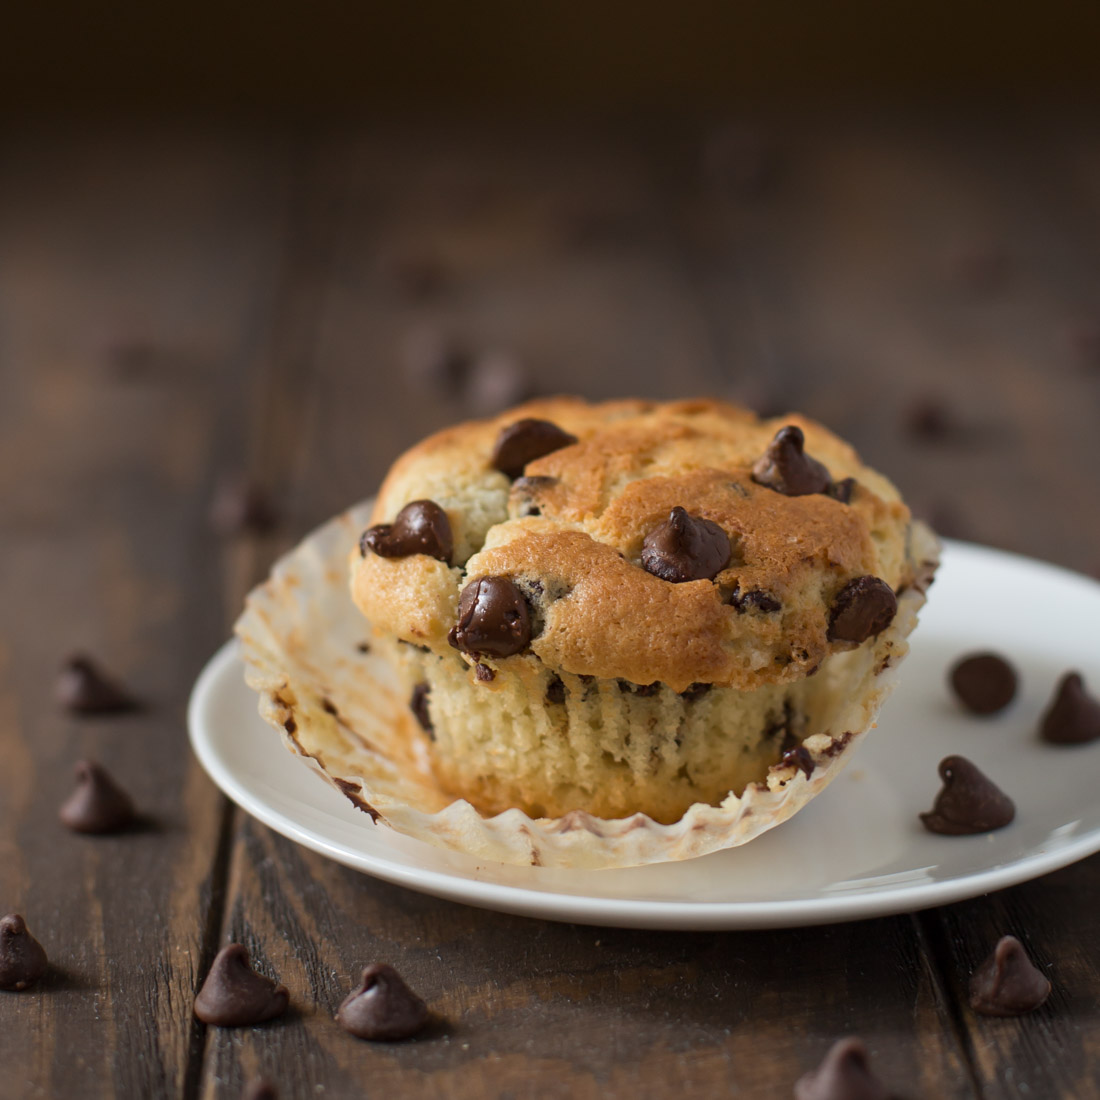 Chocolate Chip Muffin on white plate